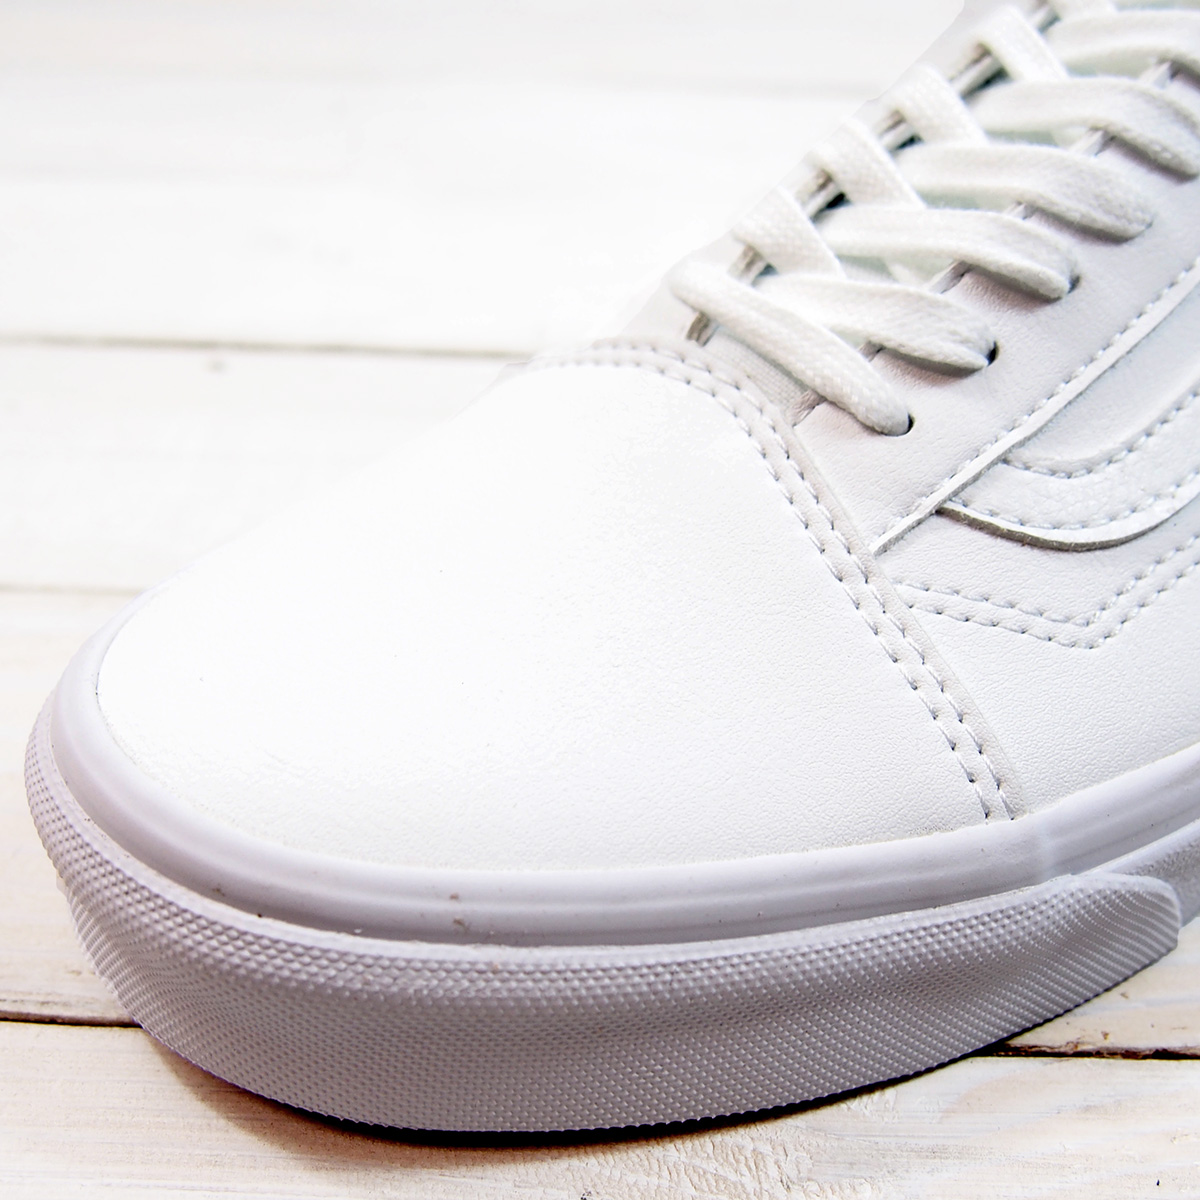 vn0a38g1odj VANS OLD SKOOL (CLASSIC TUMBLE)TRUE WHITE vans old school classic tongue bulldog toe roux white